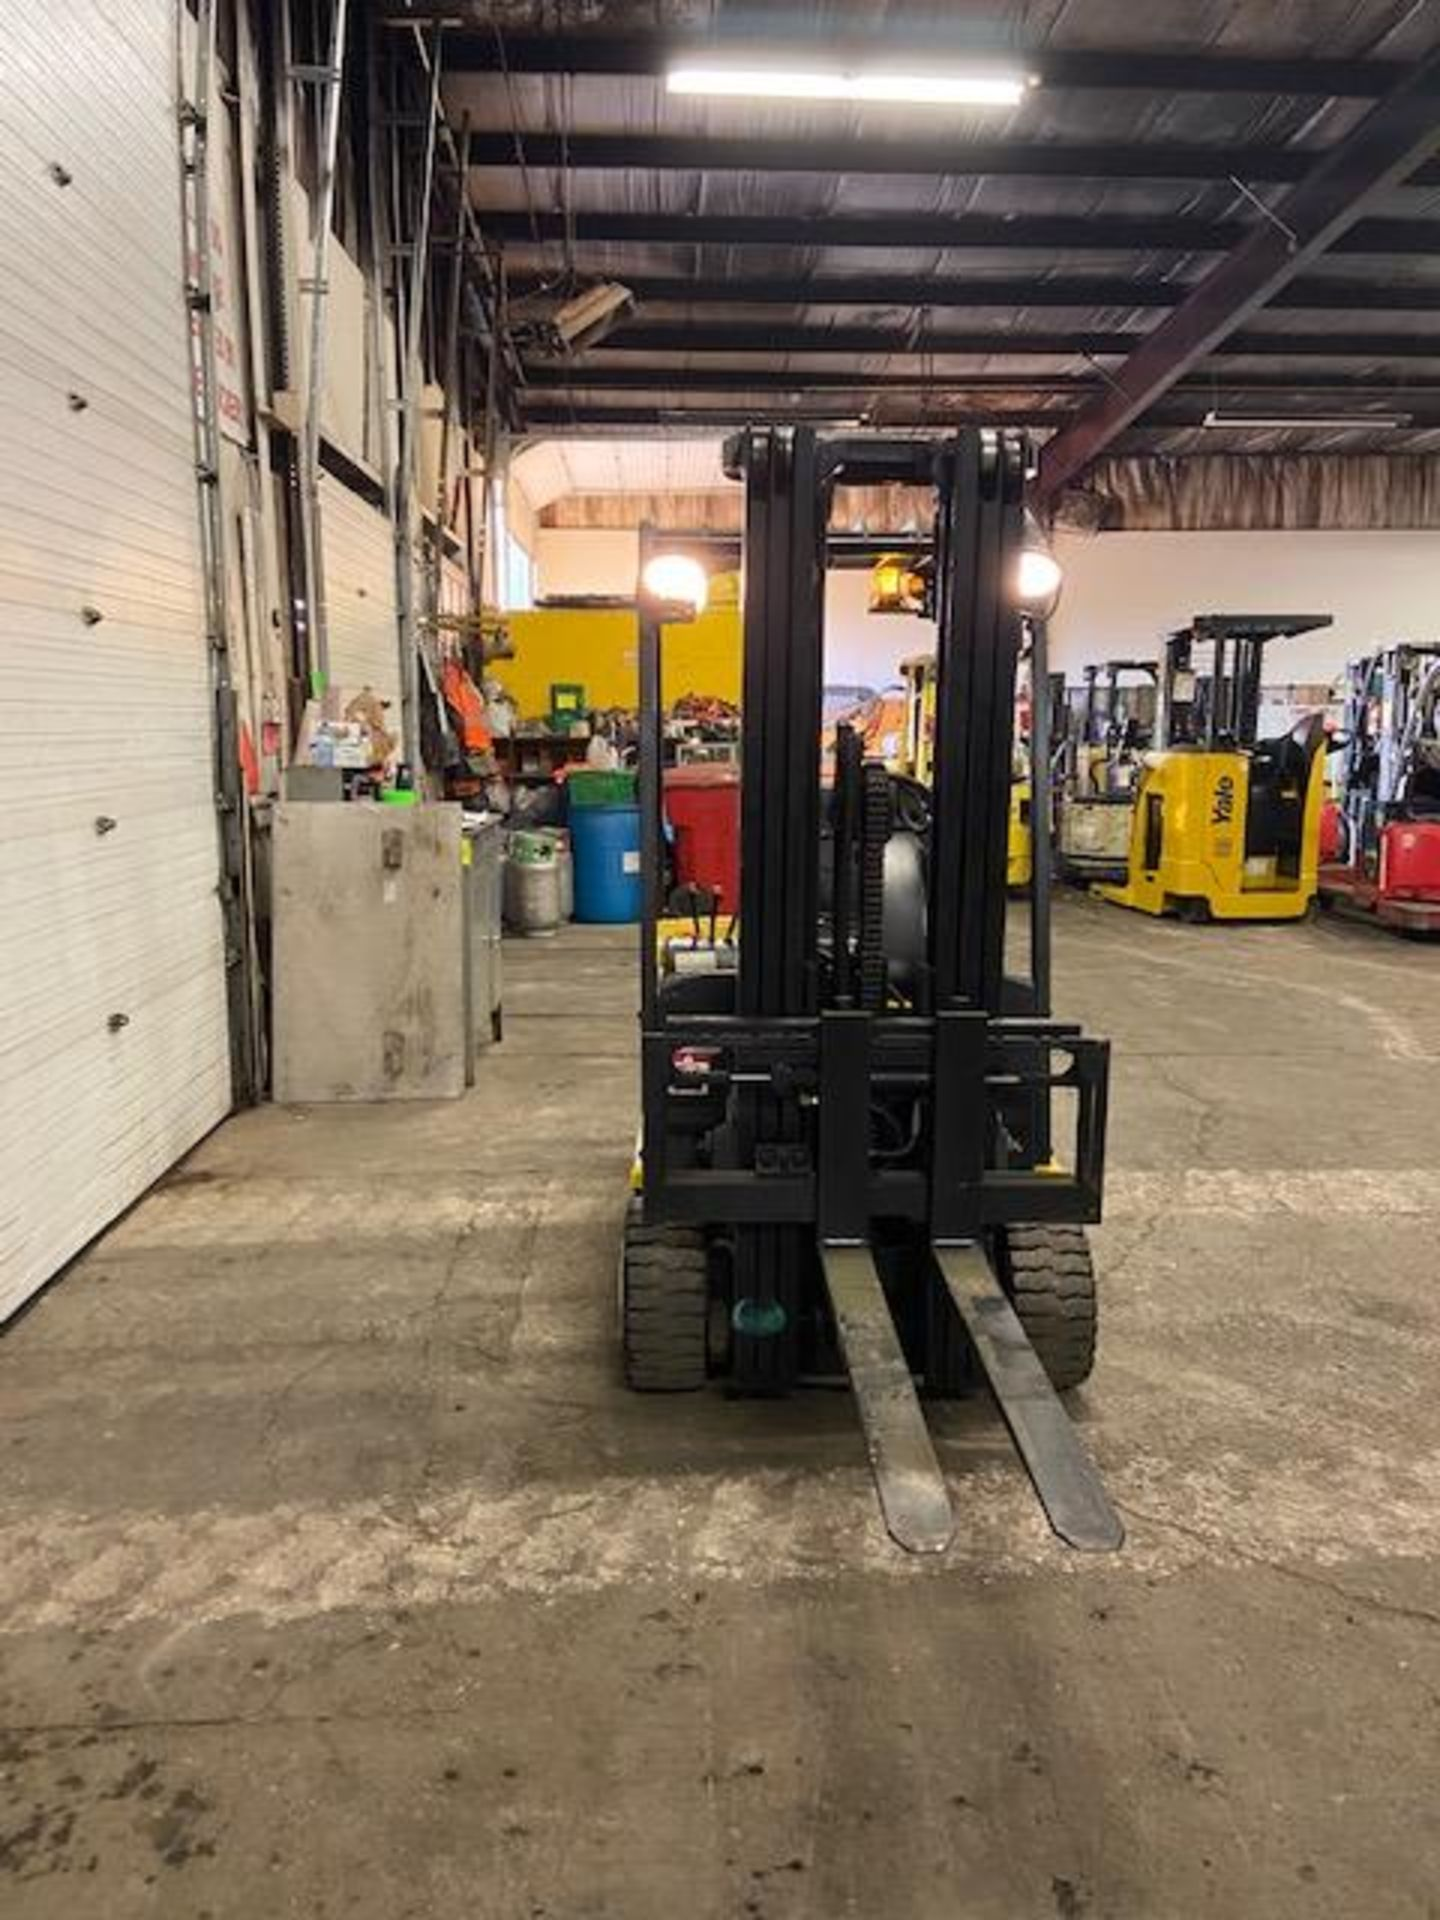 FREE CUSTOMS - Yale 4000lbs Capacity 3-wheel Forklift Electric with 3-stage mast with sideshift with - Image 2 of 3